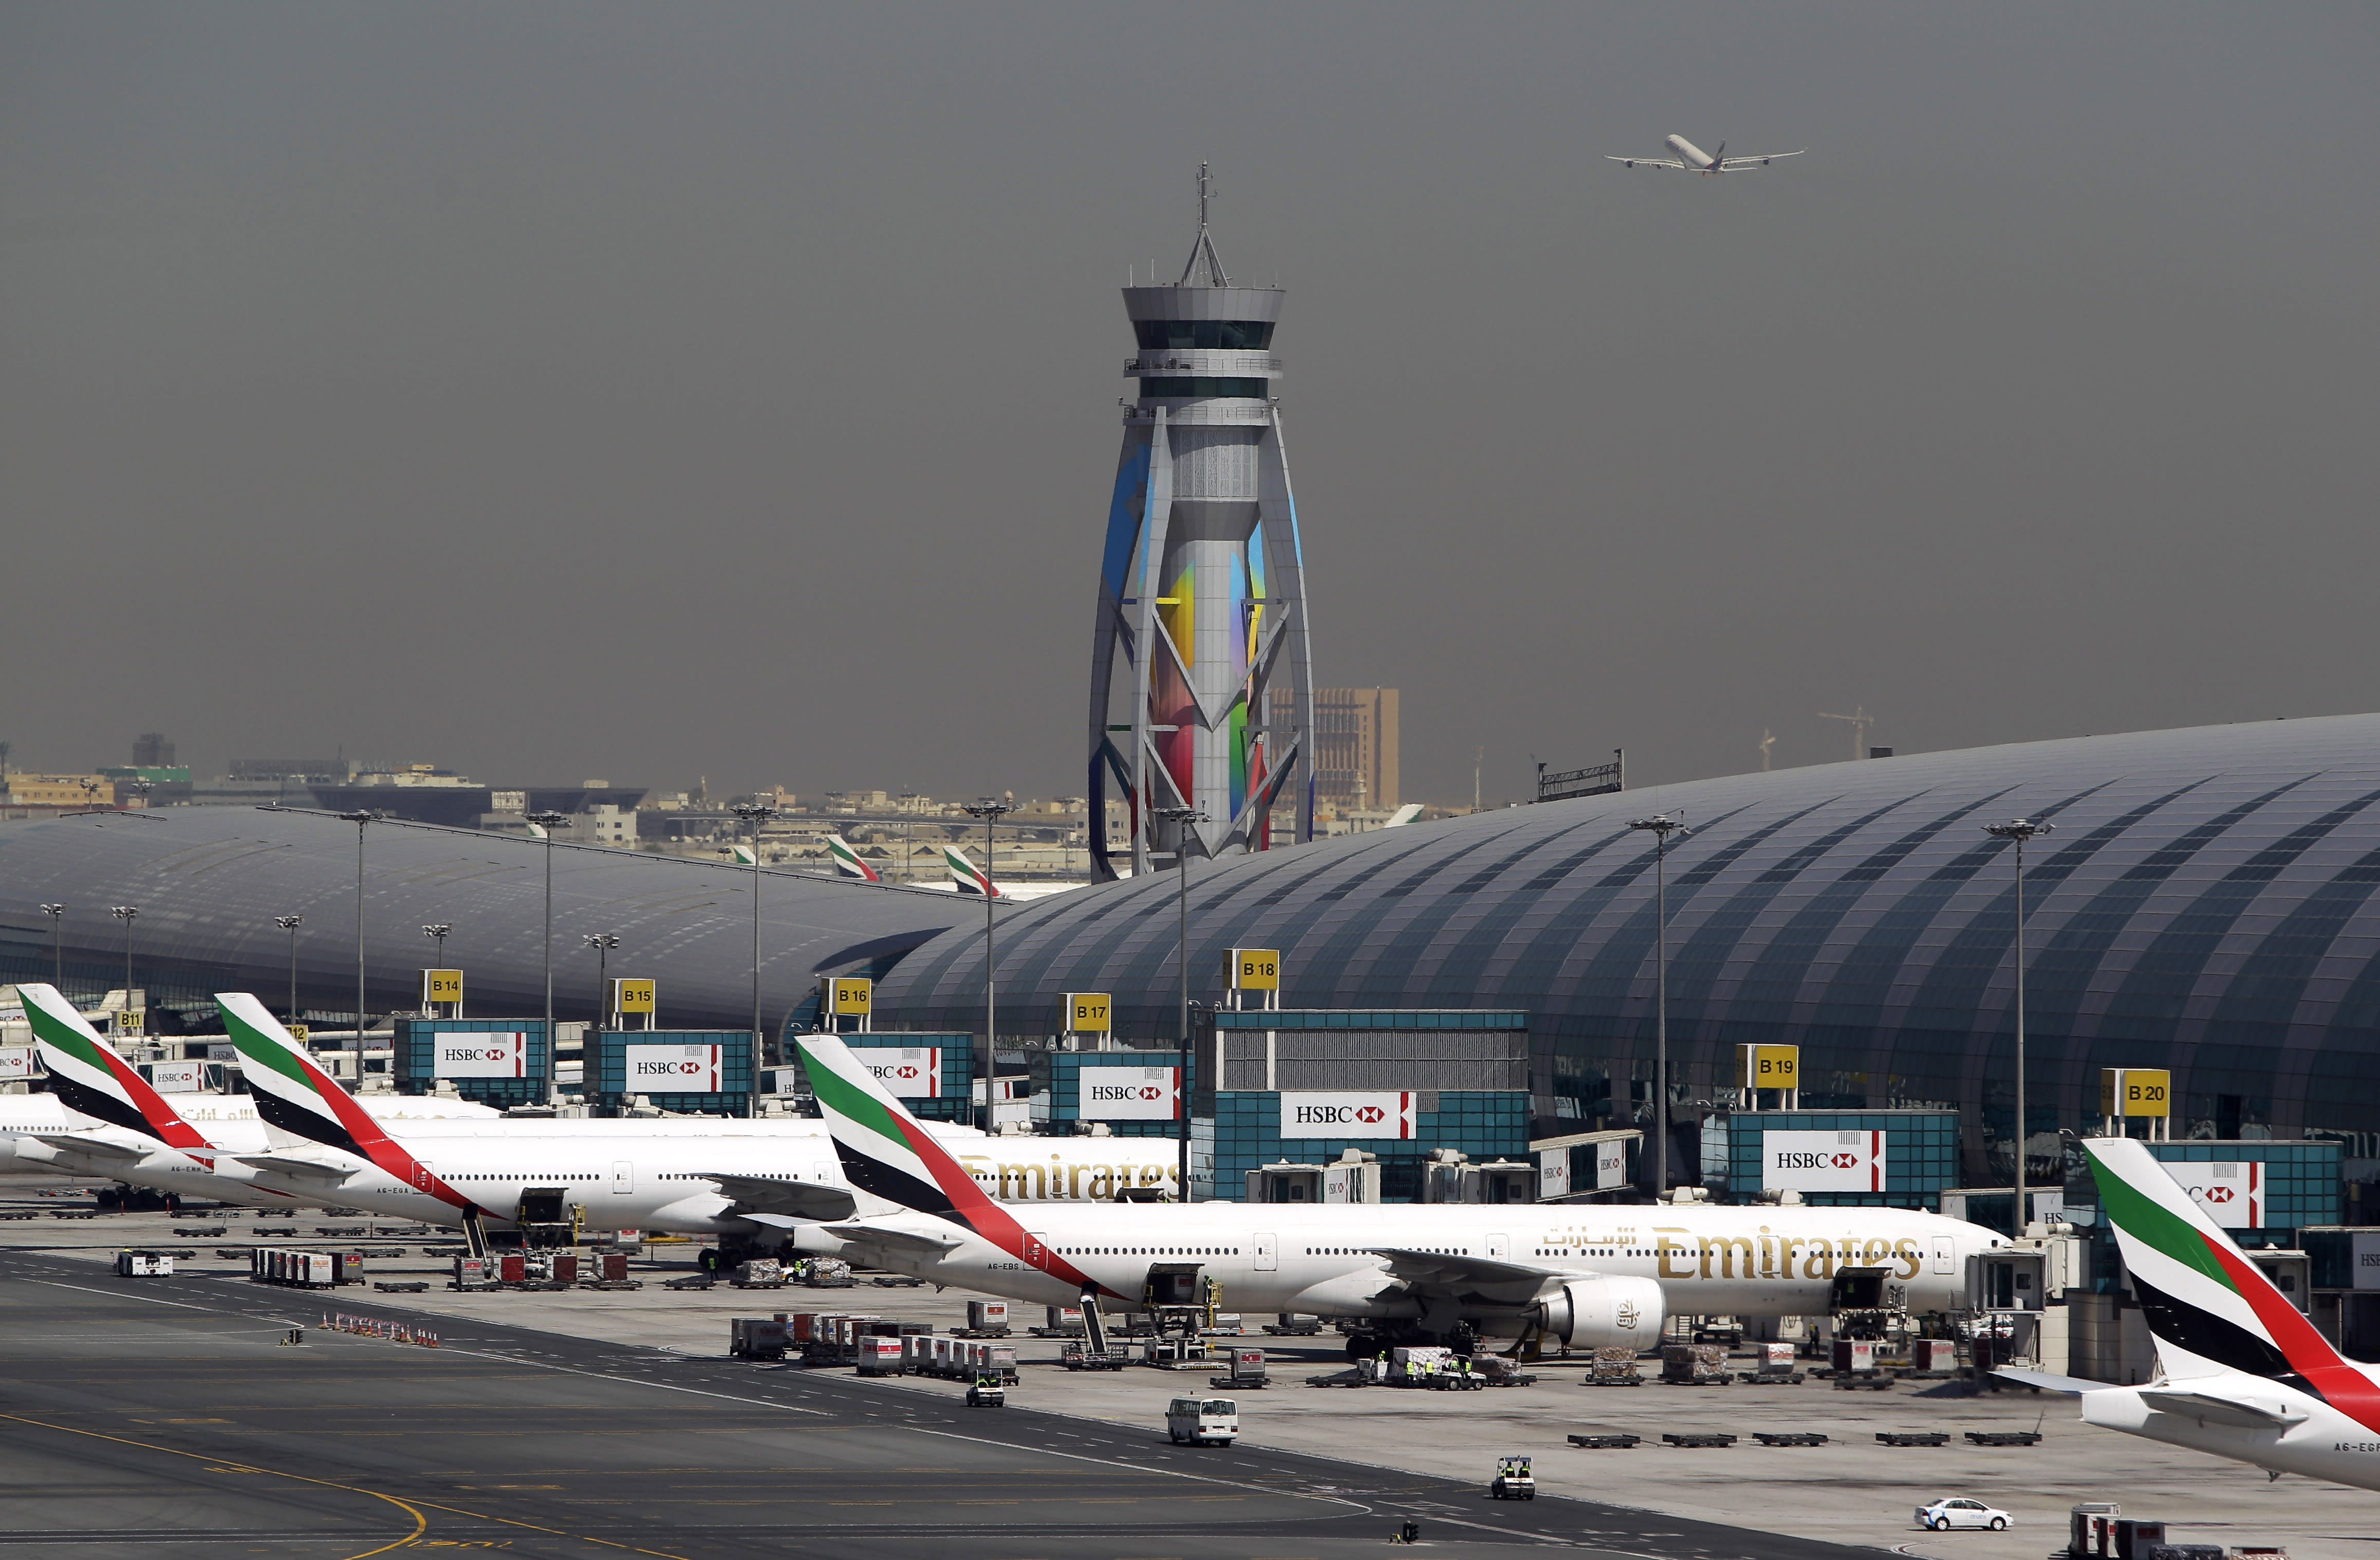 Dubai claims title of world's busiest international airport